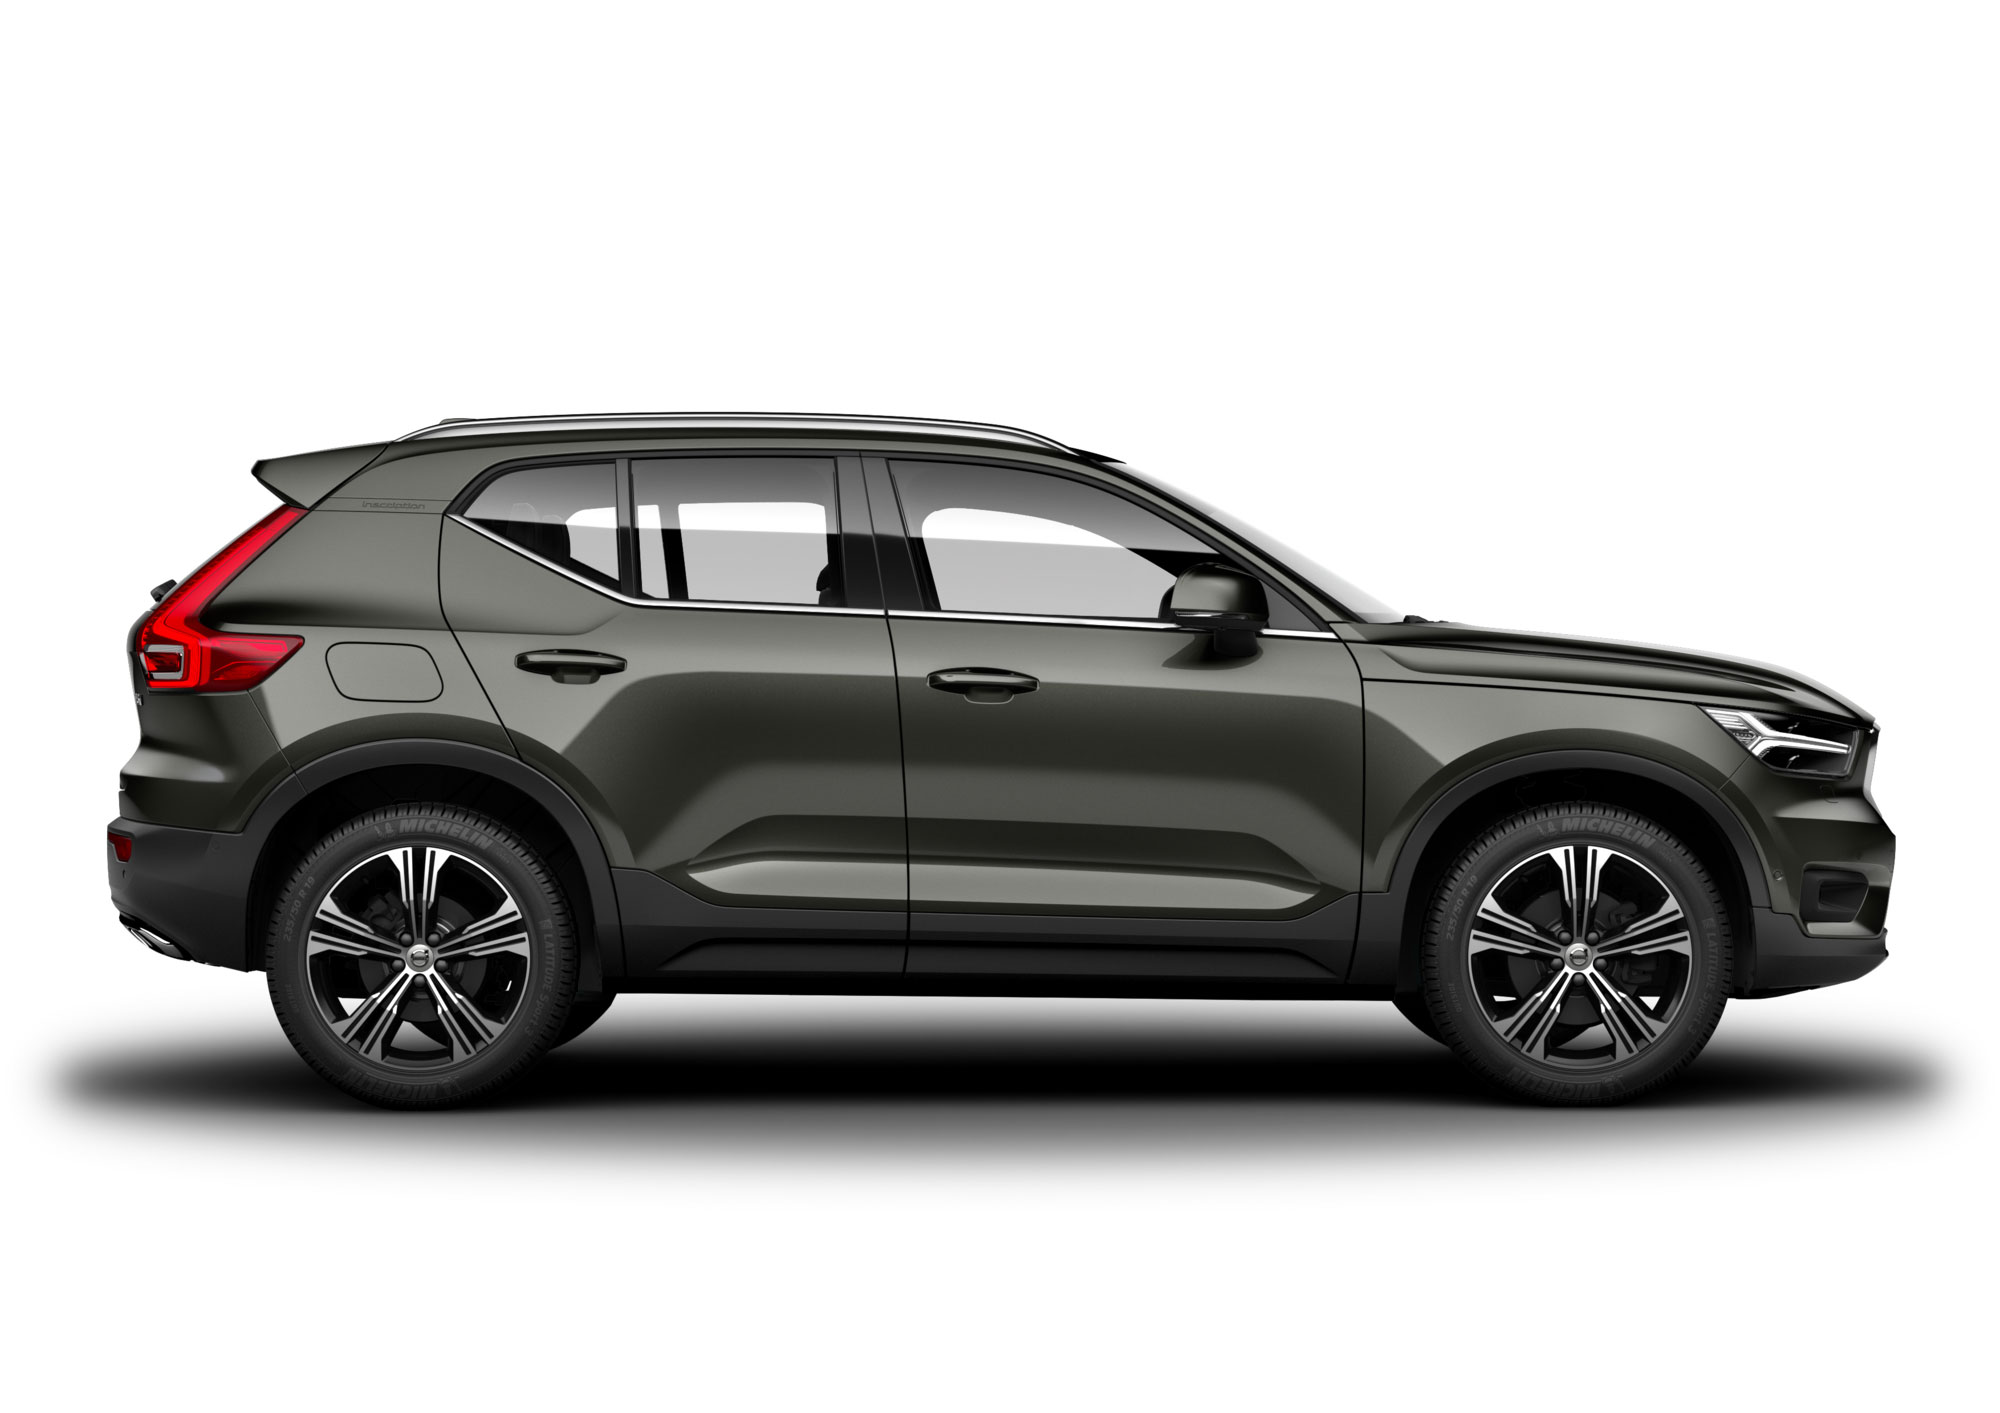 Volvo Suv Models >> Volvo XC40 - Your Compact Crossover SUV - Capitol Motors